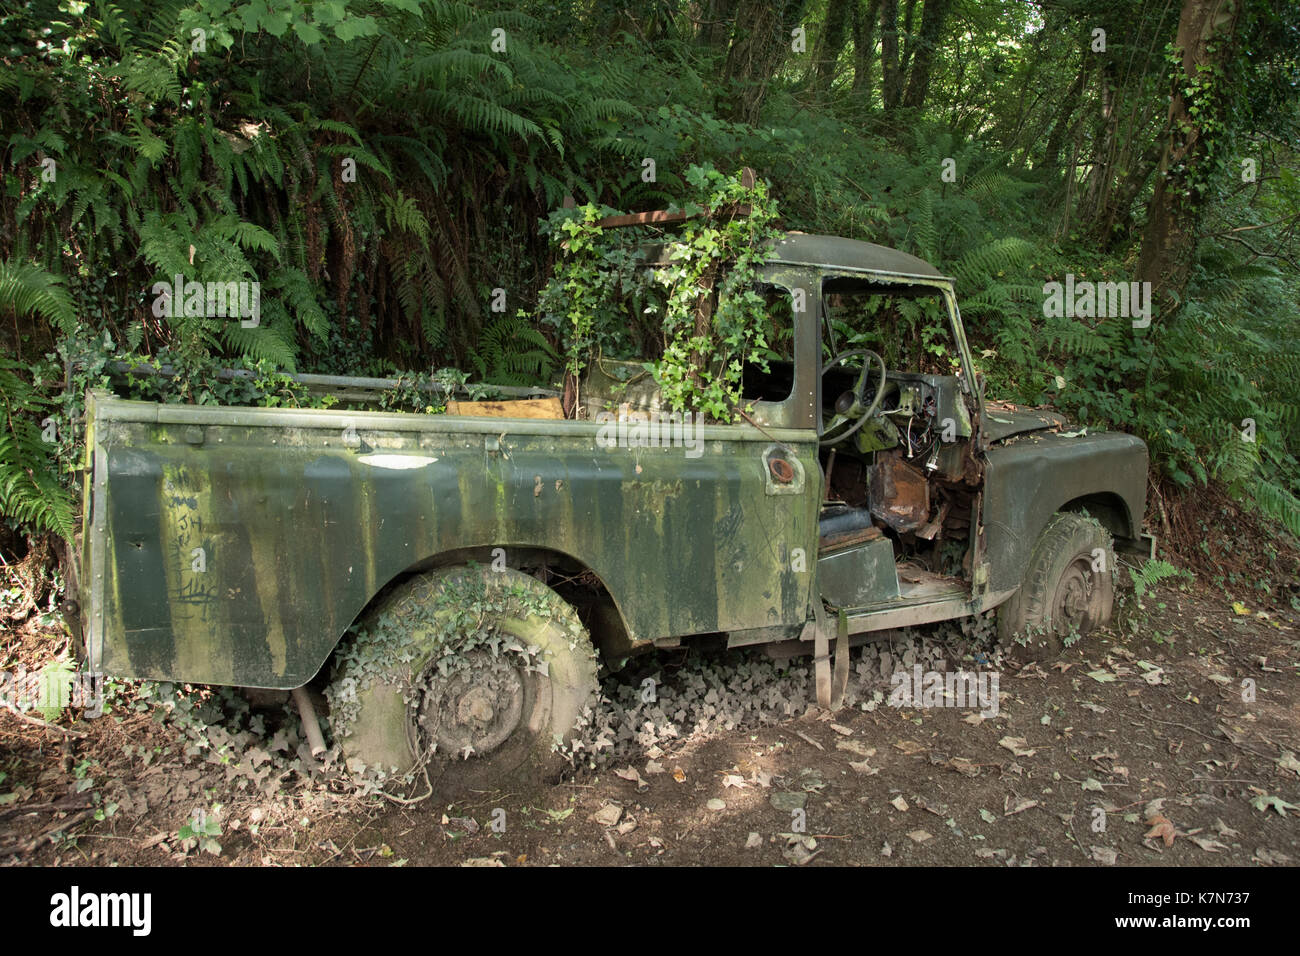 Land Rover Covered With Moss Stock Photos Defender 90 Pick Up Iconic Image